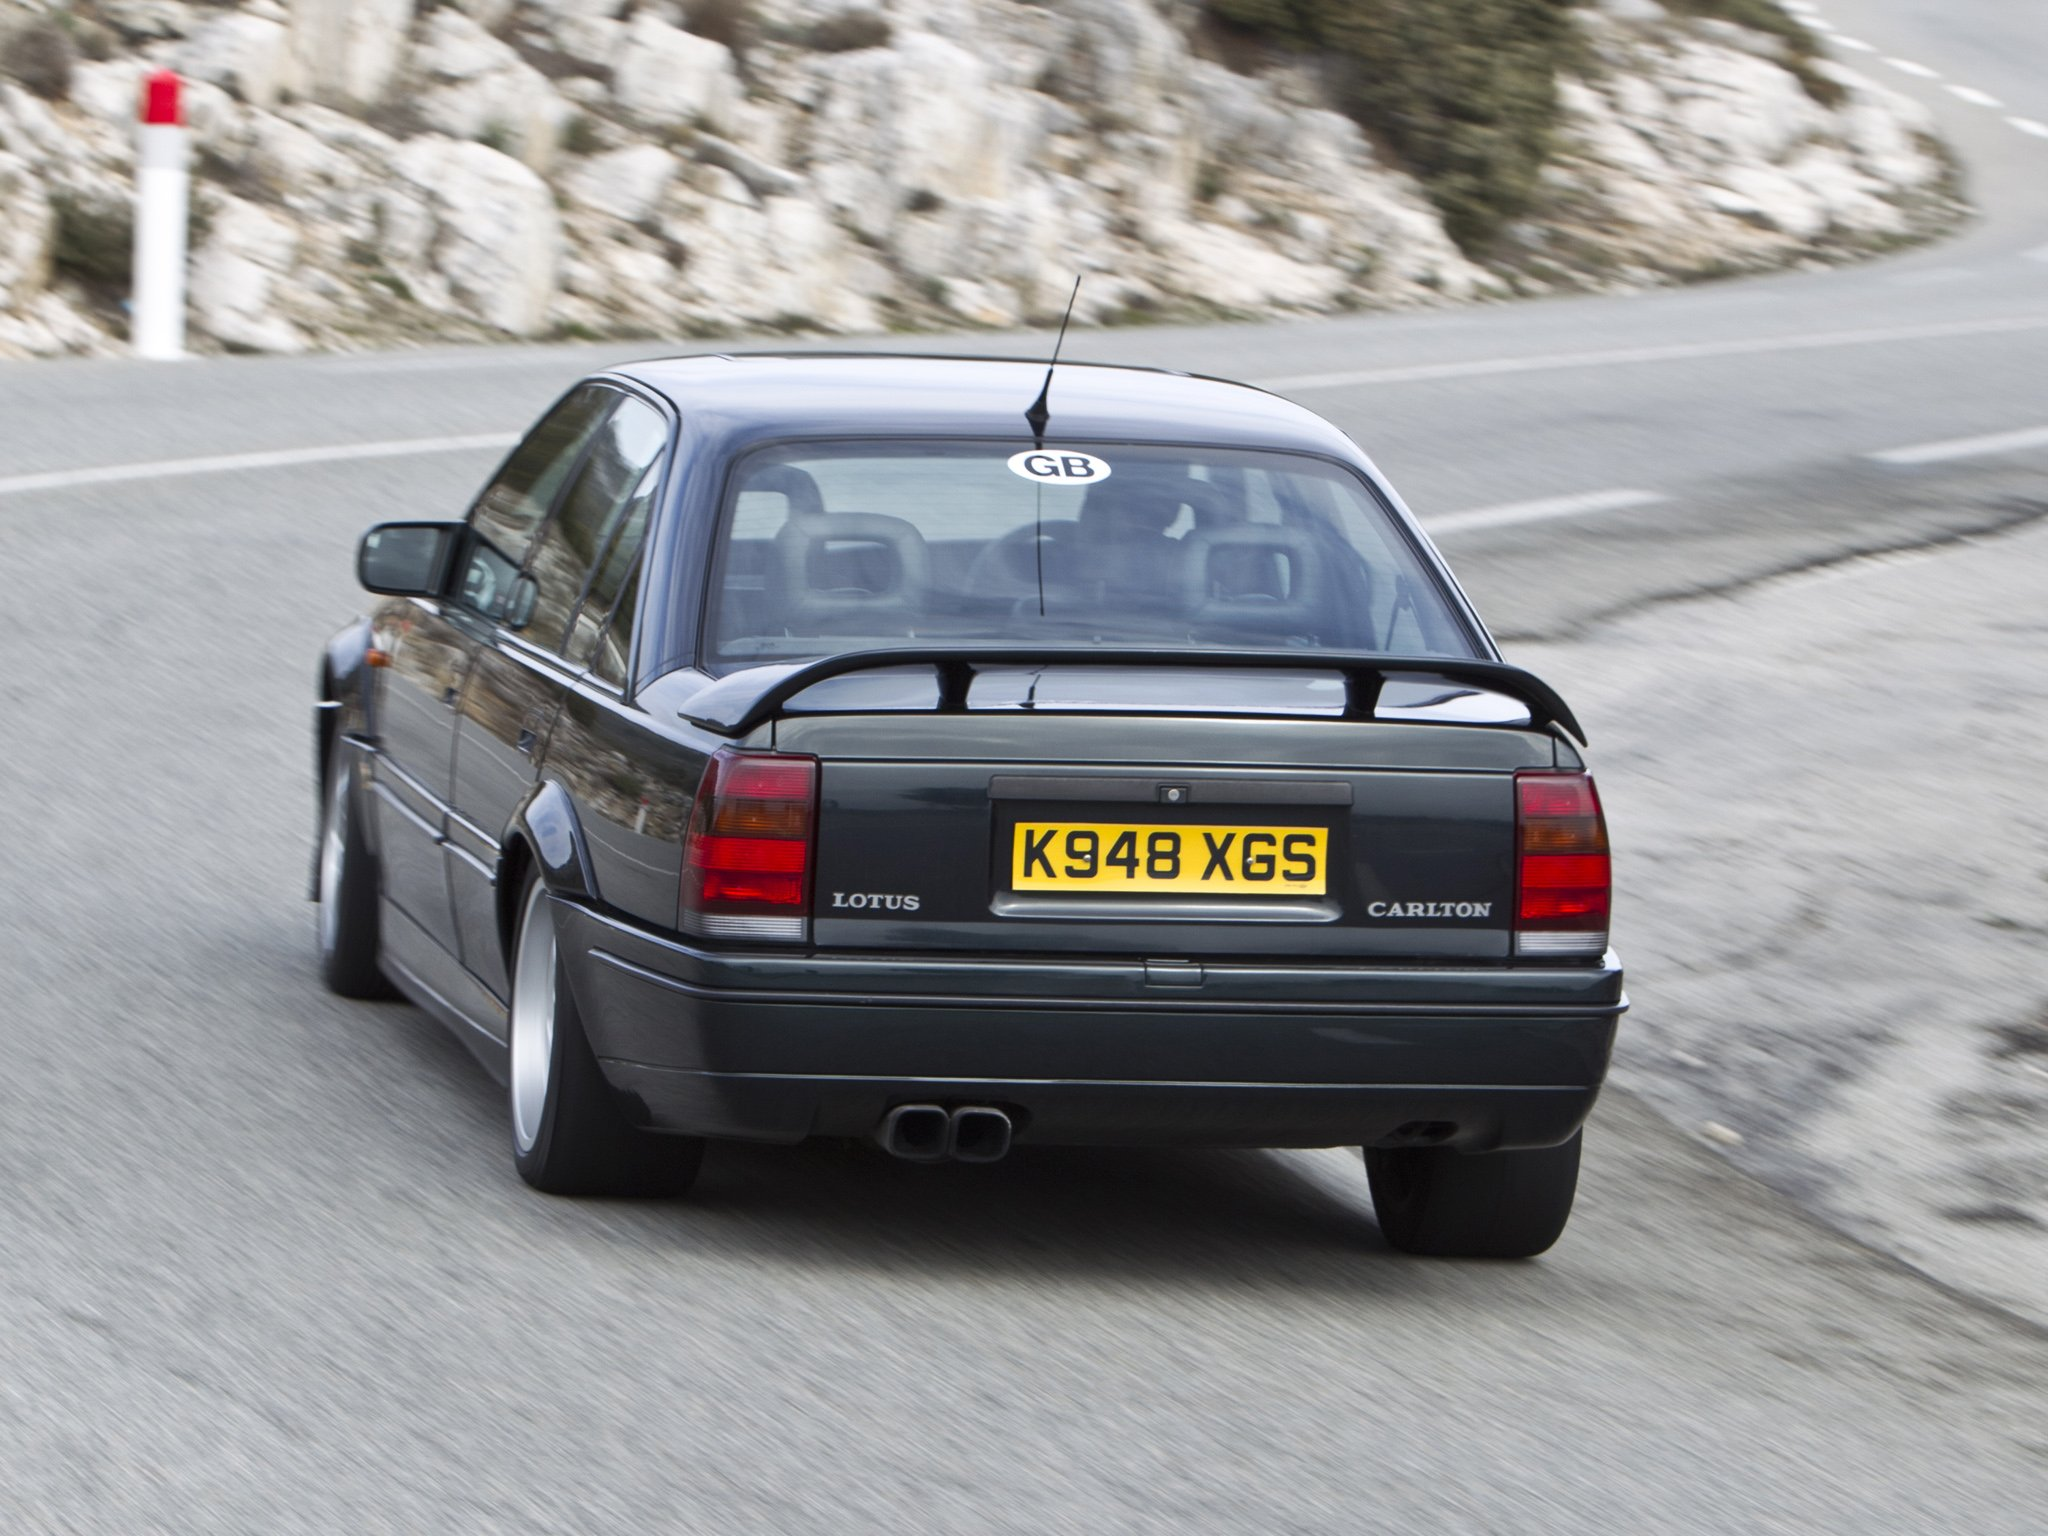 1990 92 vauxhall lotus carlton f wallpaper 2048x1536 298268 wallpaperup. Black Bedroom Furniture Sets. Home Design Ideas